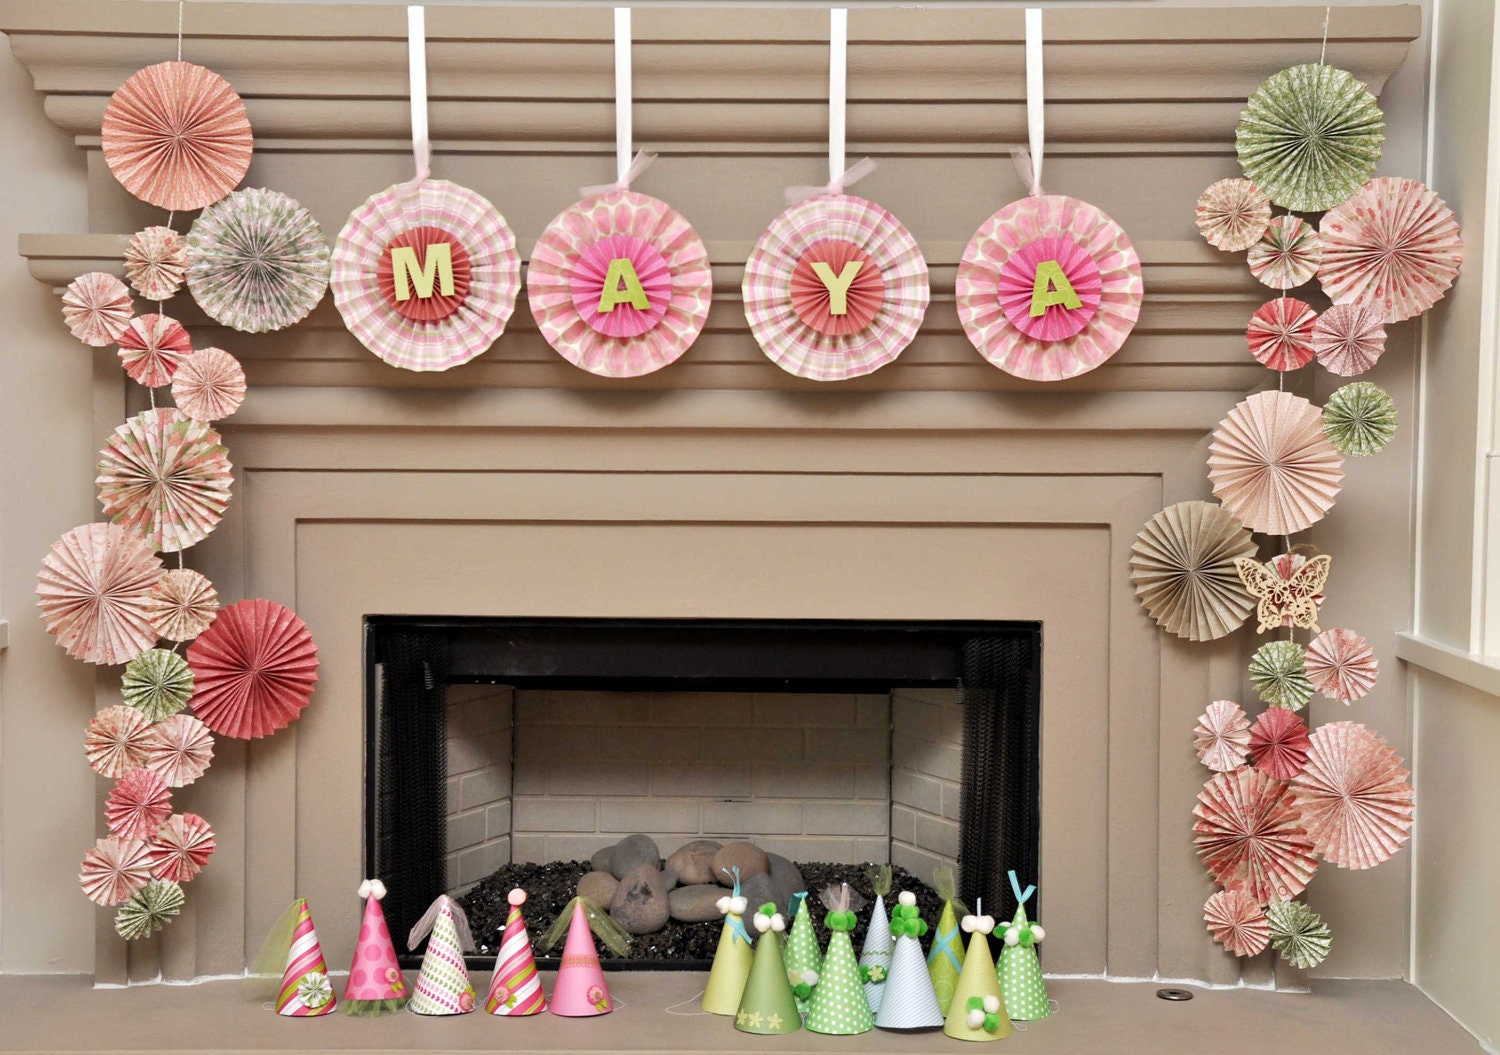 Pinning Decorations On Pinterest Paper Rosettes Prom